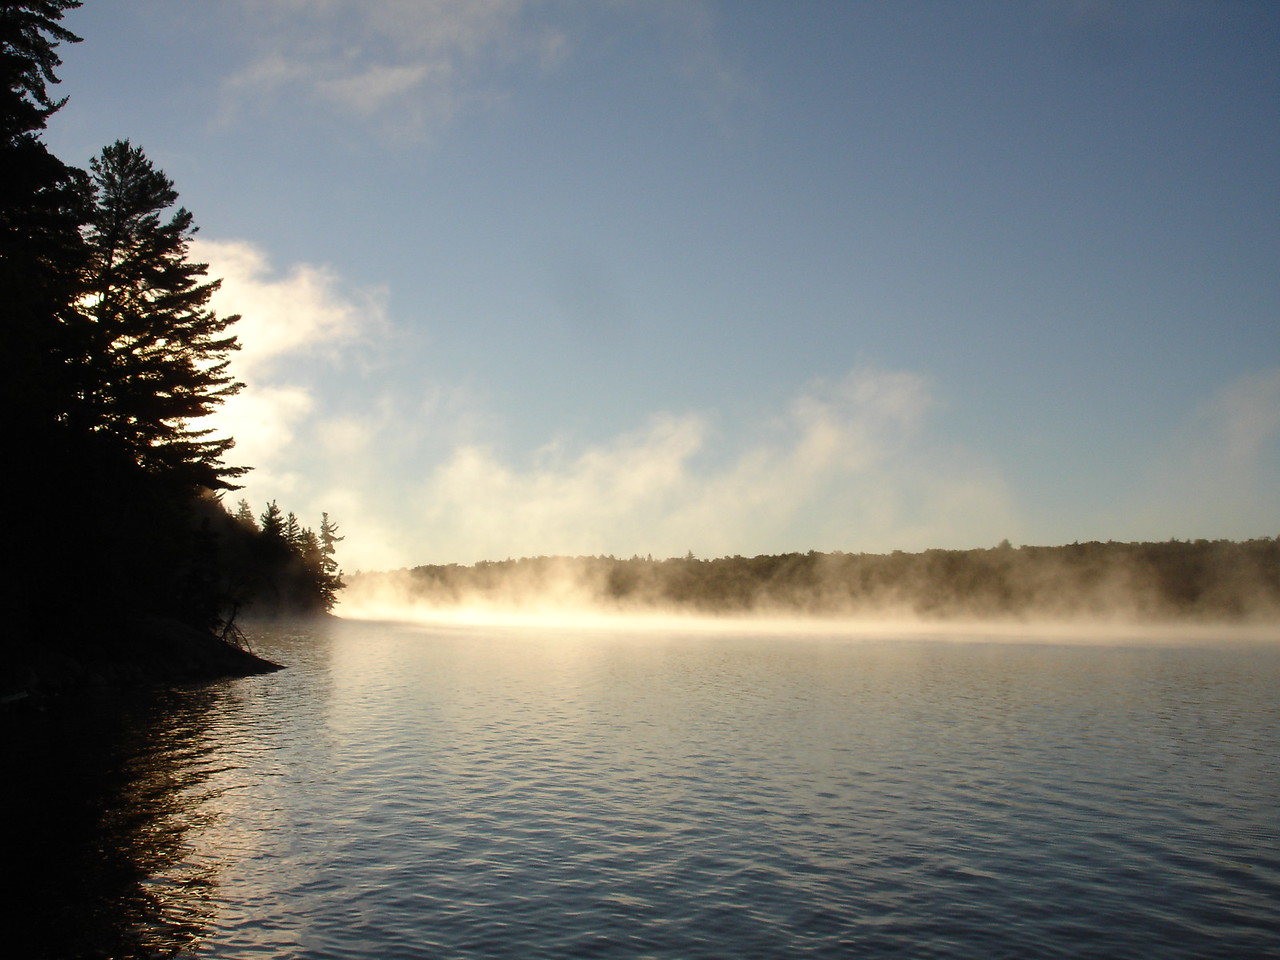 Morning mist on Harry Lake.